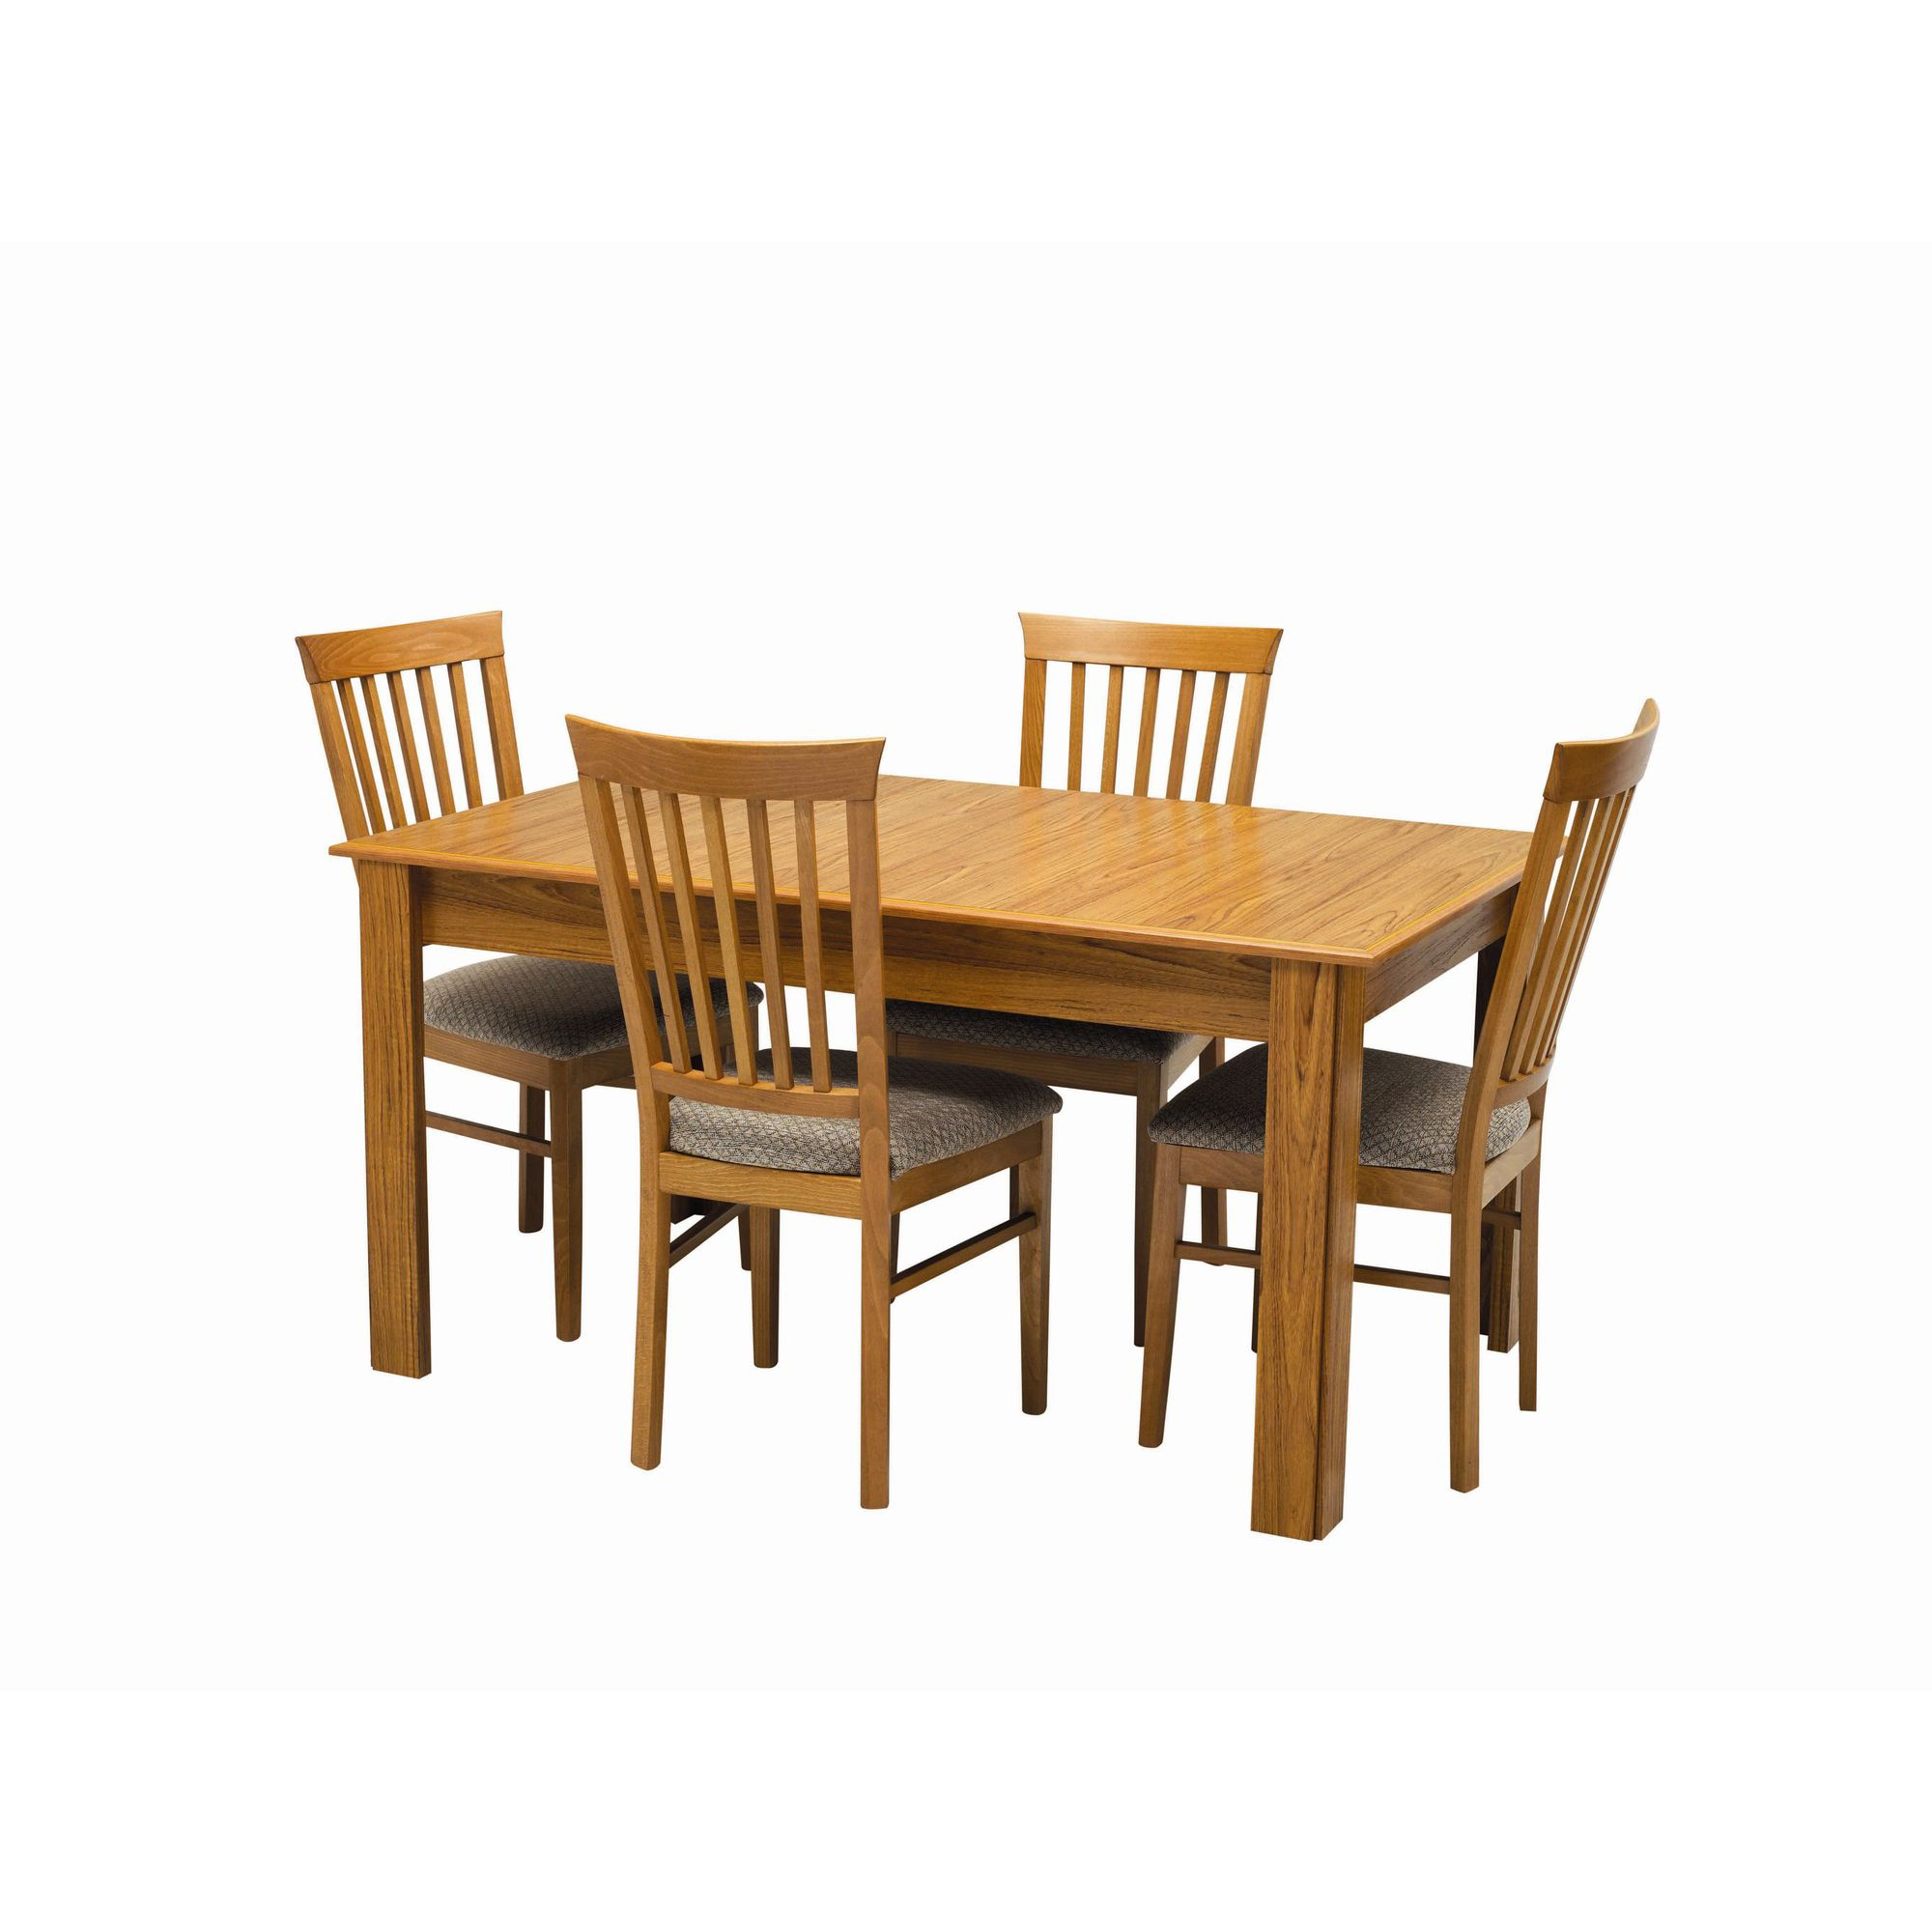 Caxton Tennyson Extending Dining Set with 4 Slatted Back Dining Chairs in Teak - Oyster at Tesco Direct